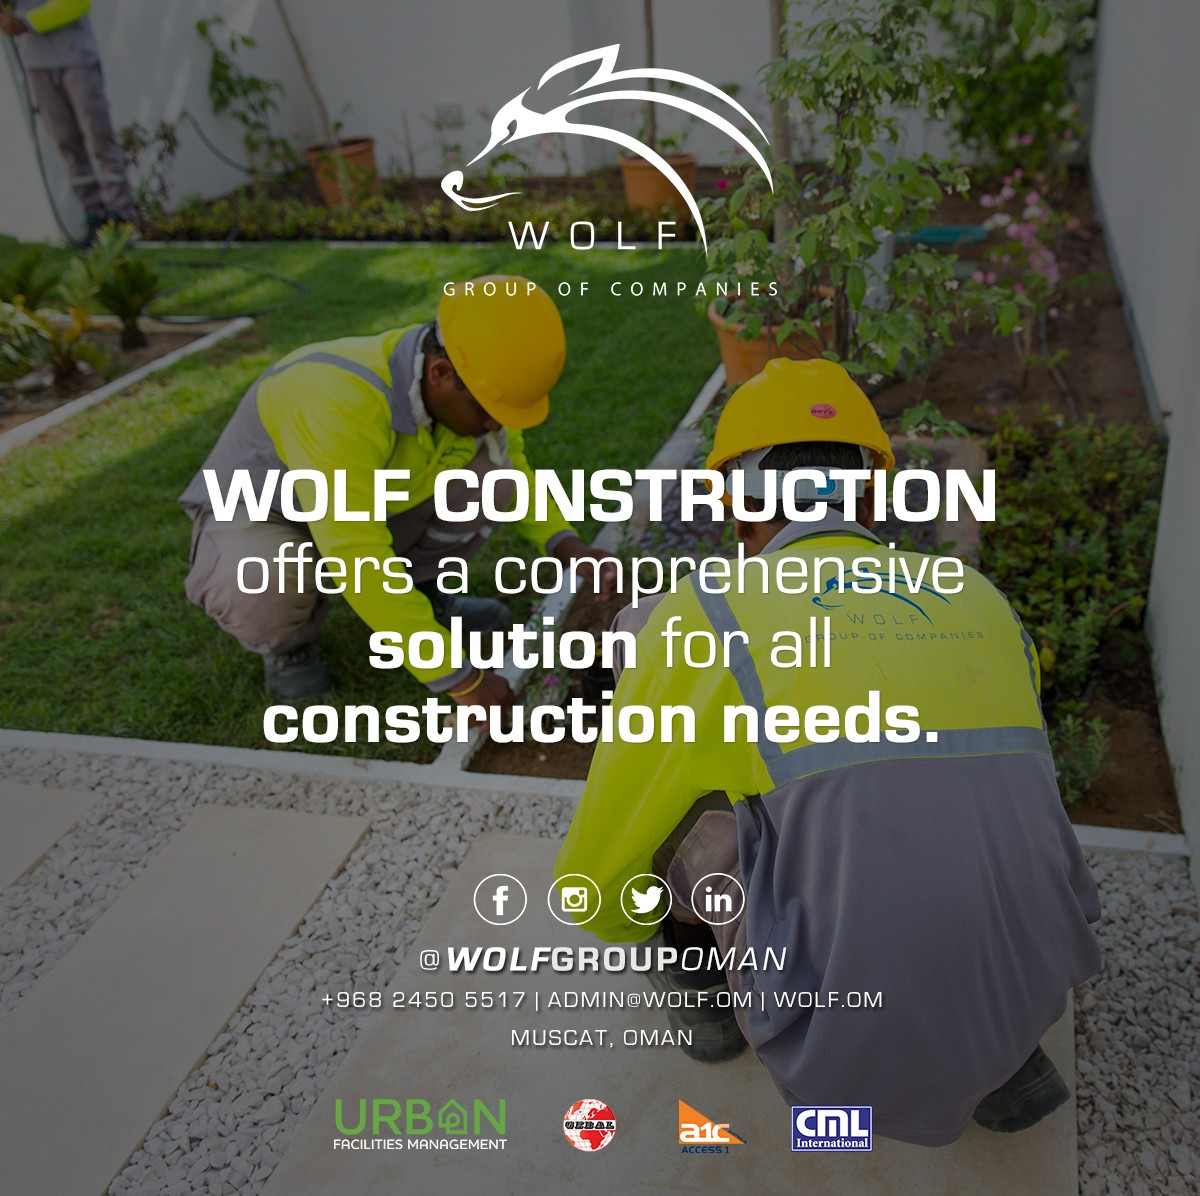 Wolf Group of Companies | LinkedIn